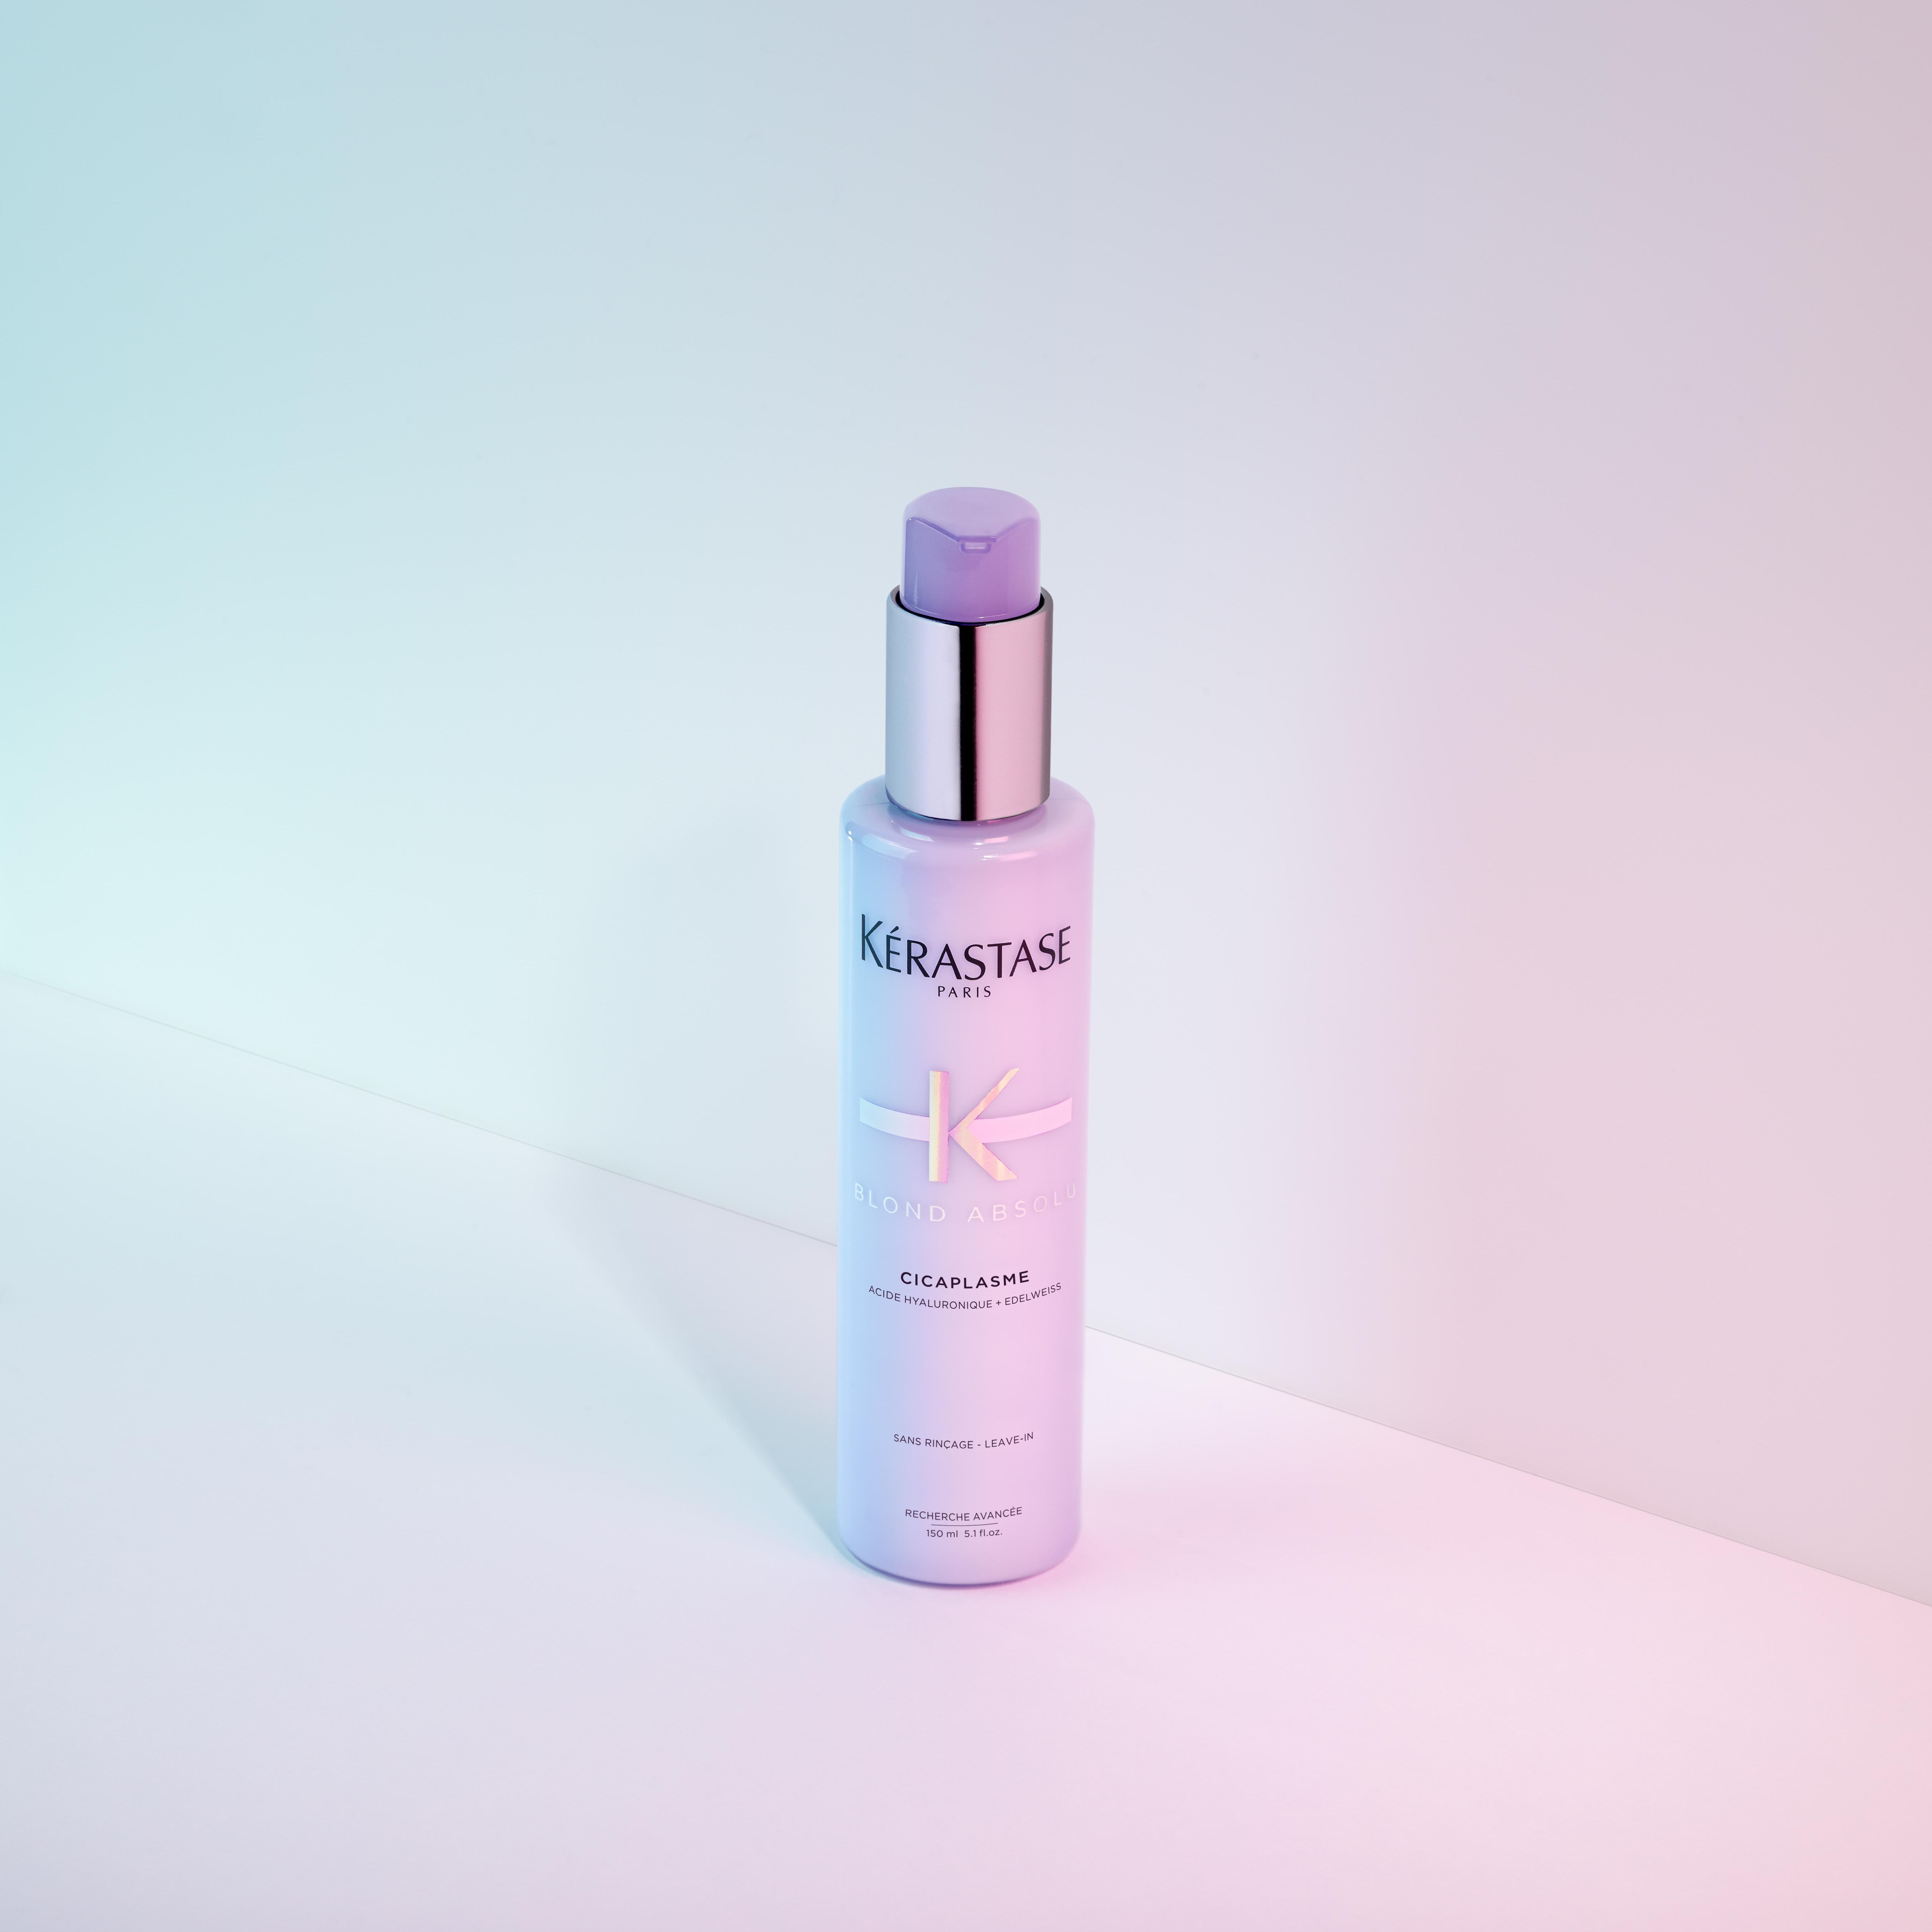 Cicaplasme is a heat protecting serum for blonde hair  It